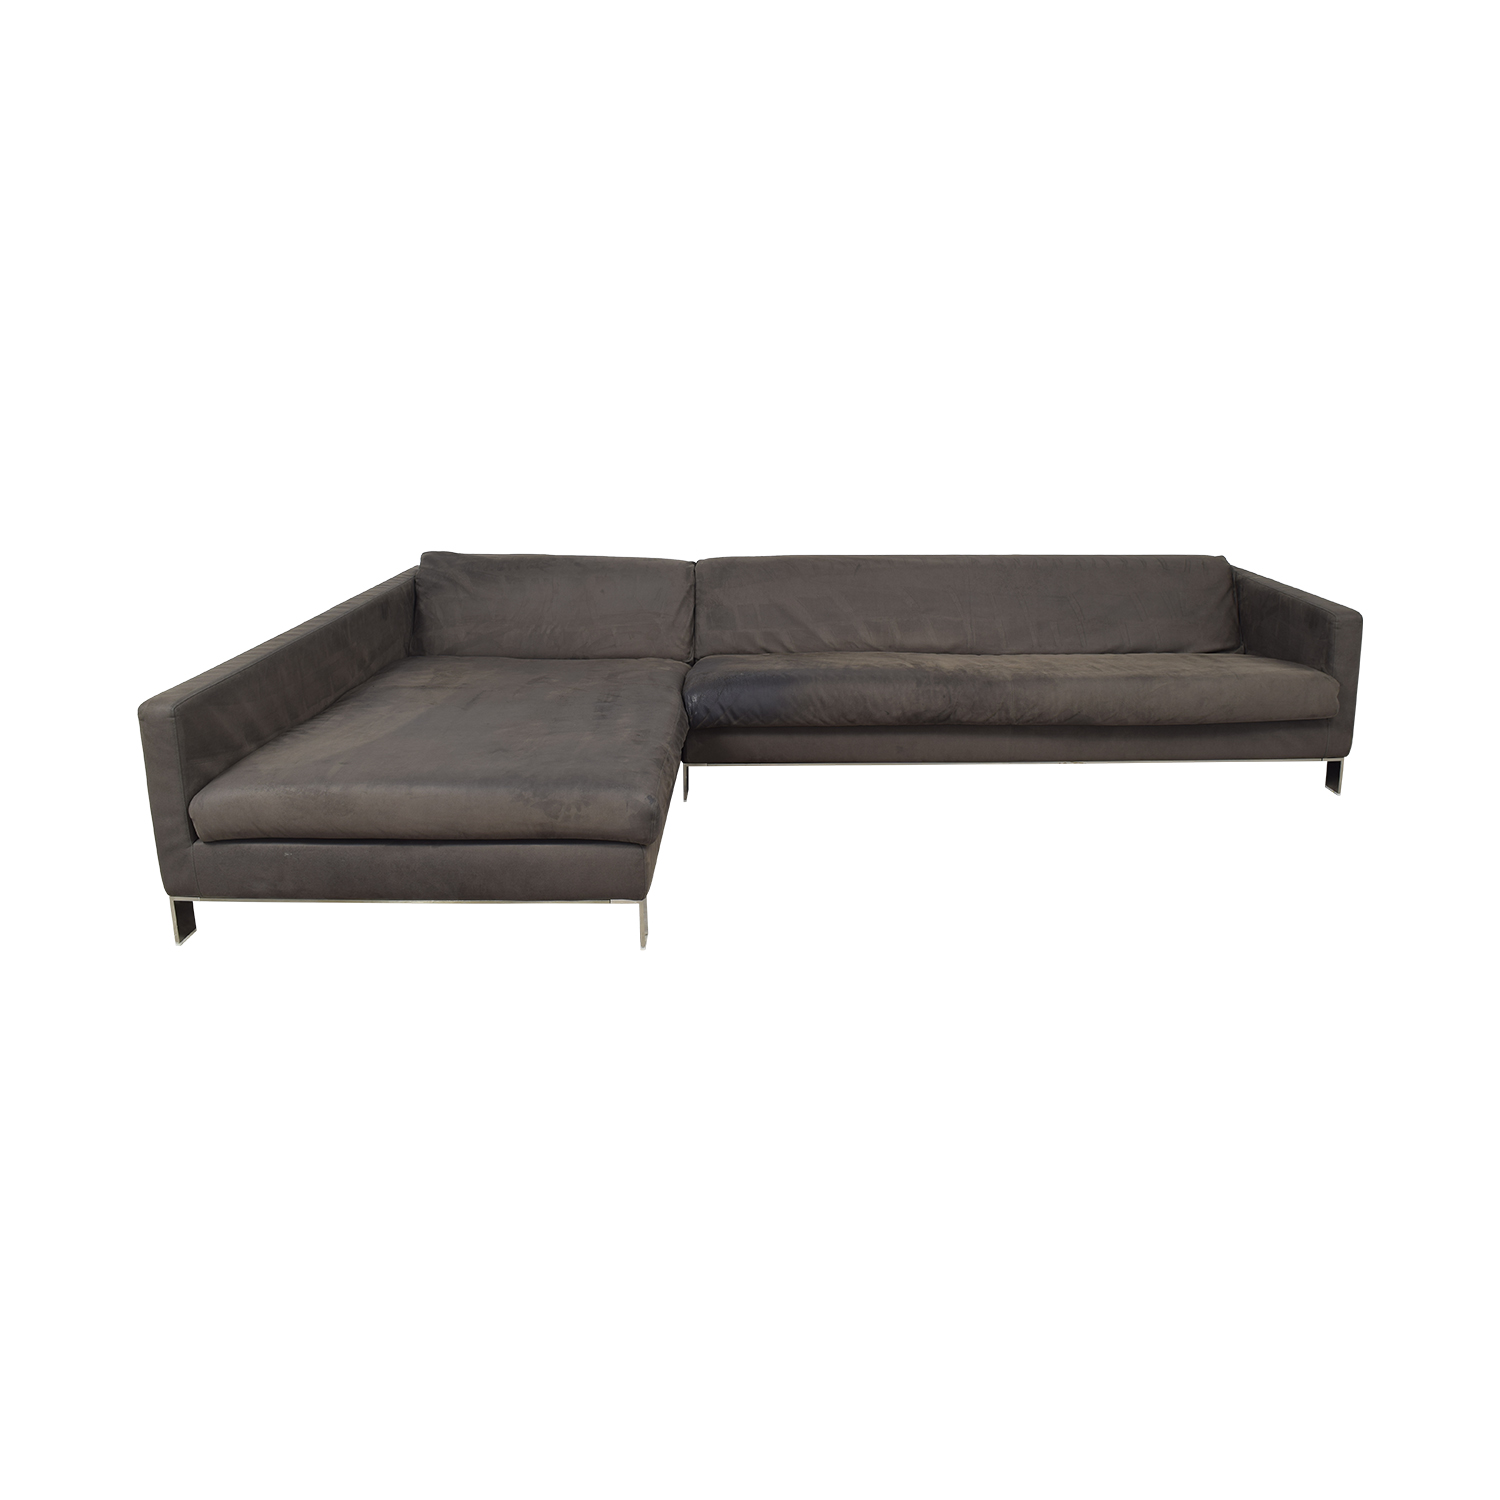 Cappellini Cappelini Sectional Sofa dark gray